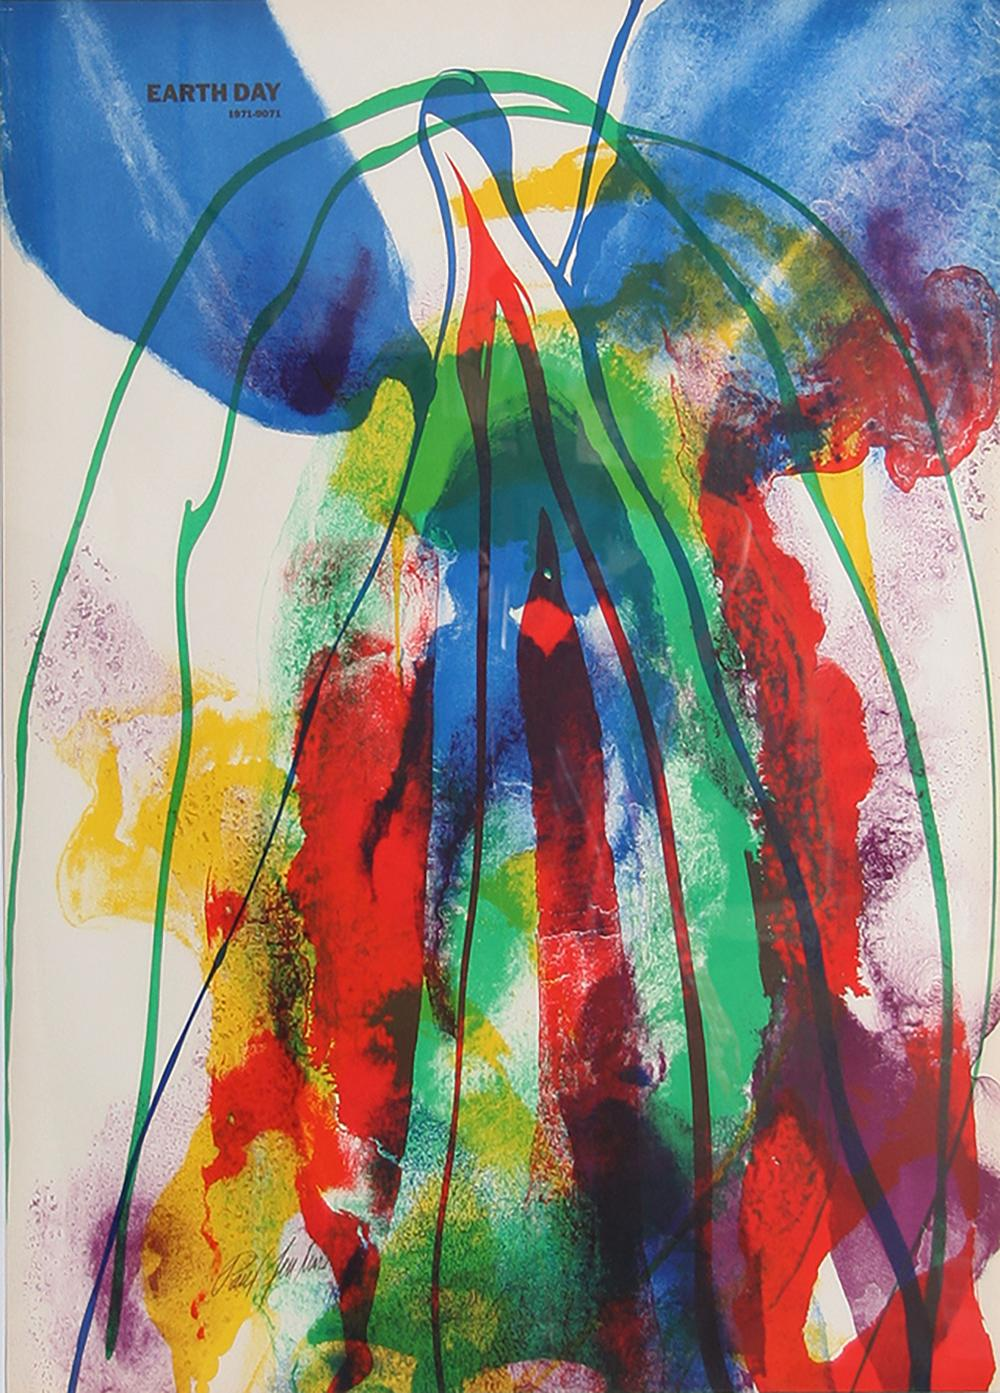 PAUL JENKINS, EARTH DAY, LITHOGRAPH